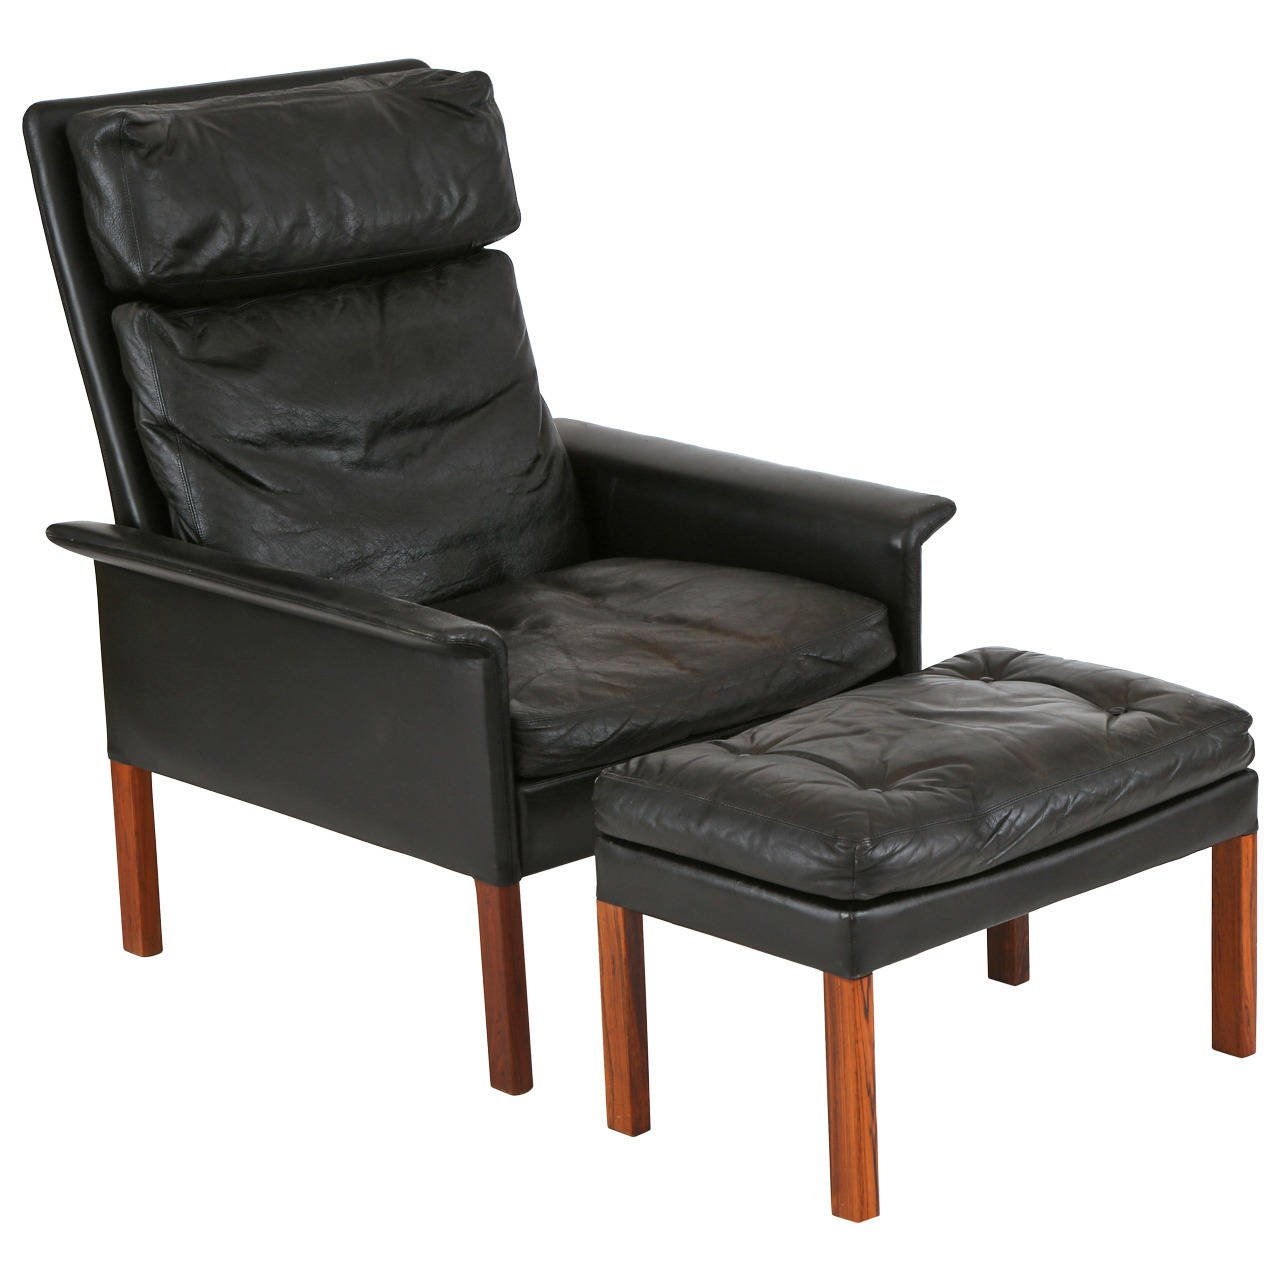 Beau Hans Olsen Leather And Rosewood Lounge Chair And Ottoman